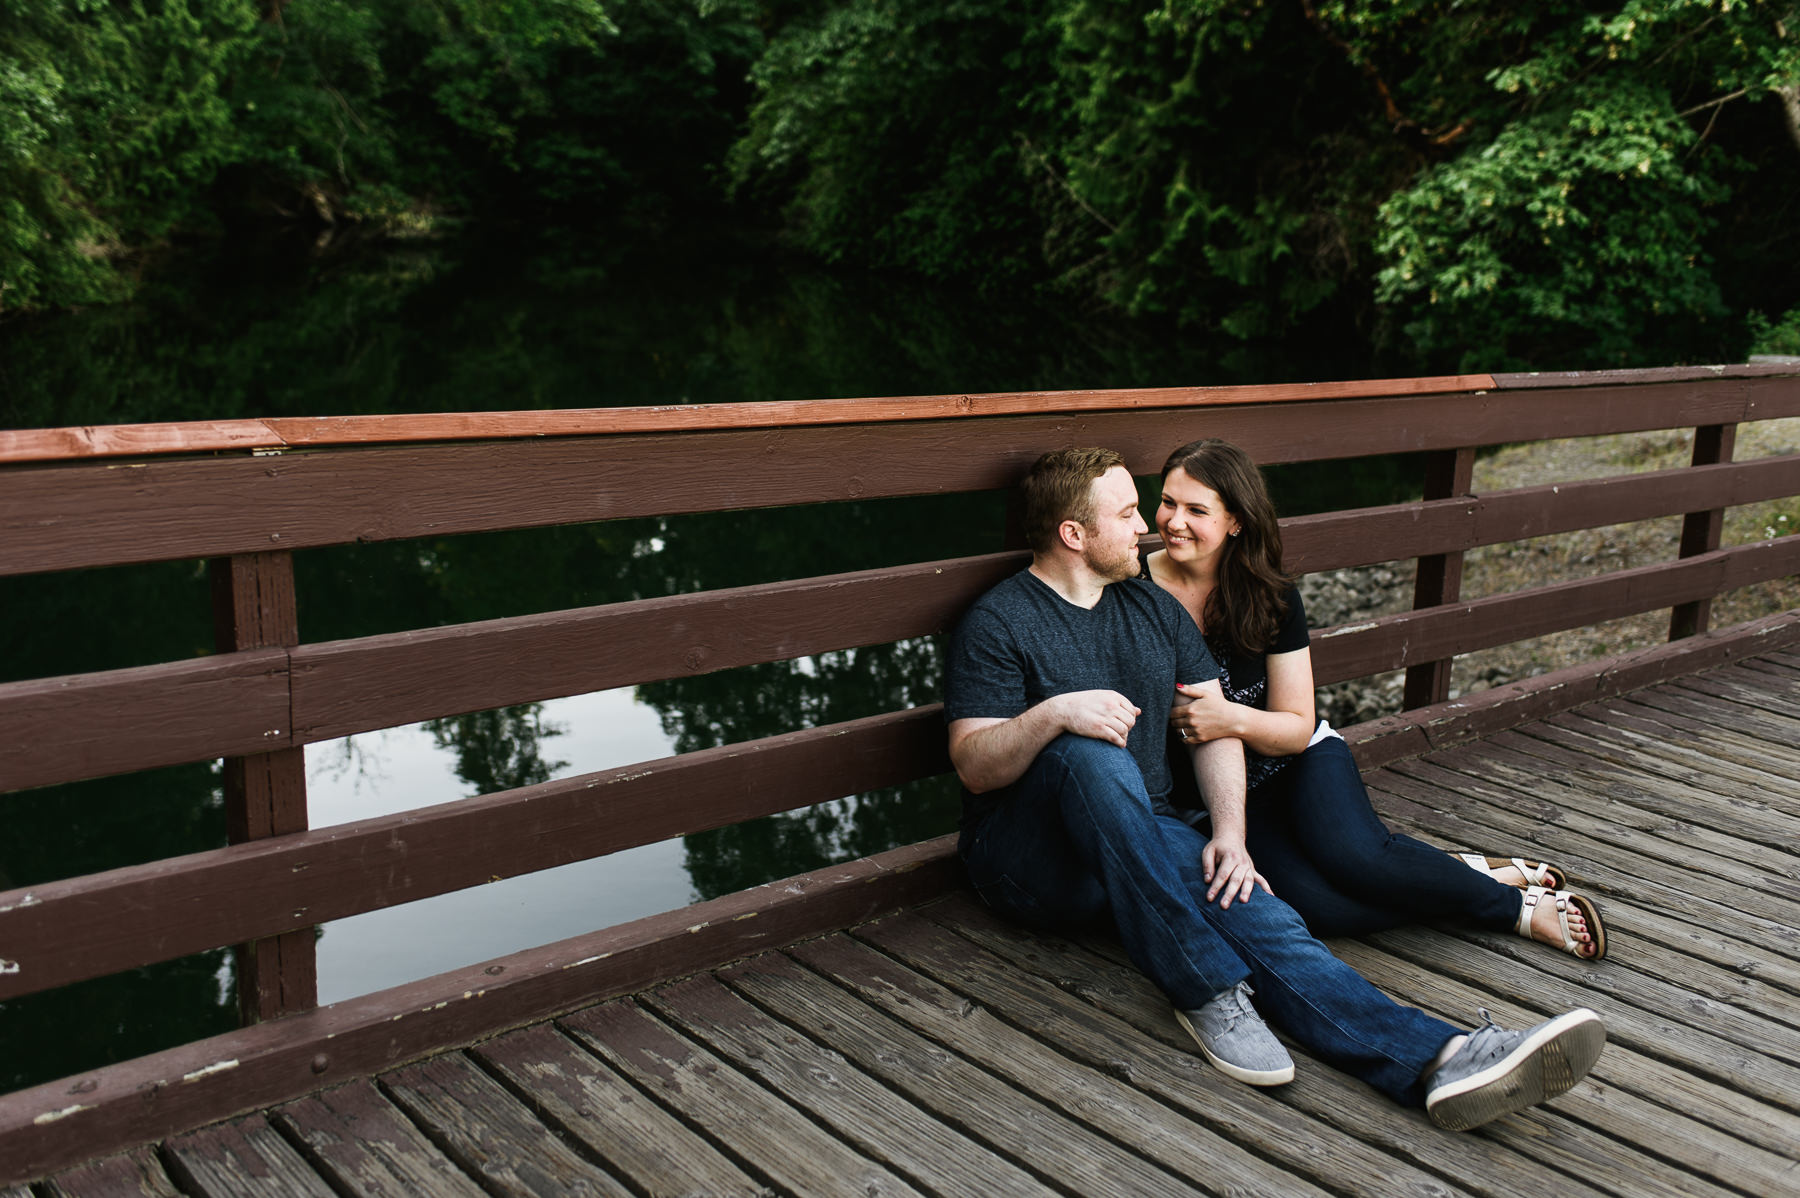 bainbridge island downtown waterfront bridge engagement